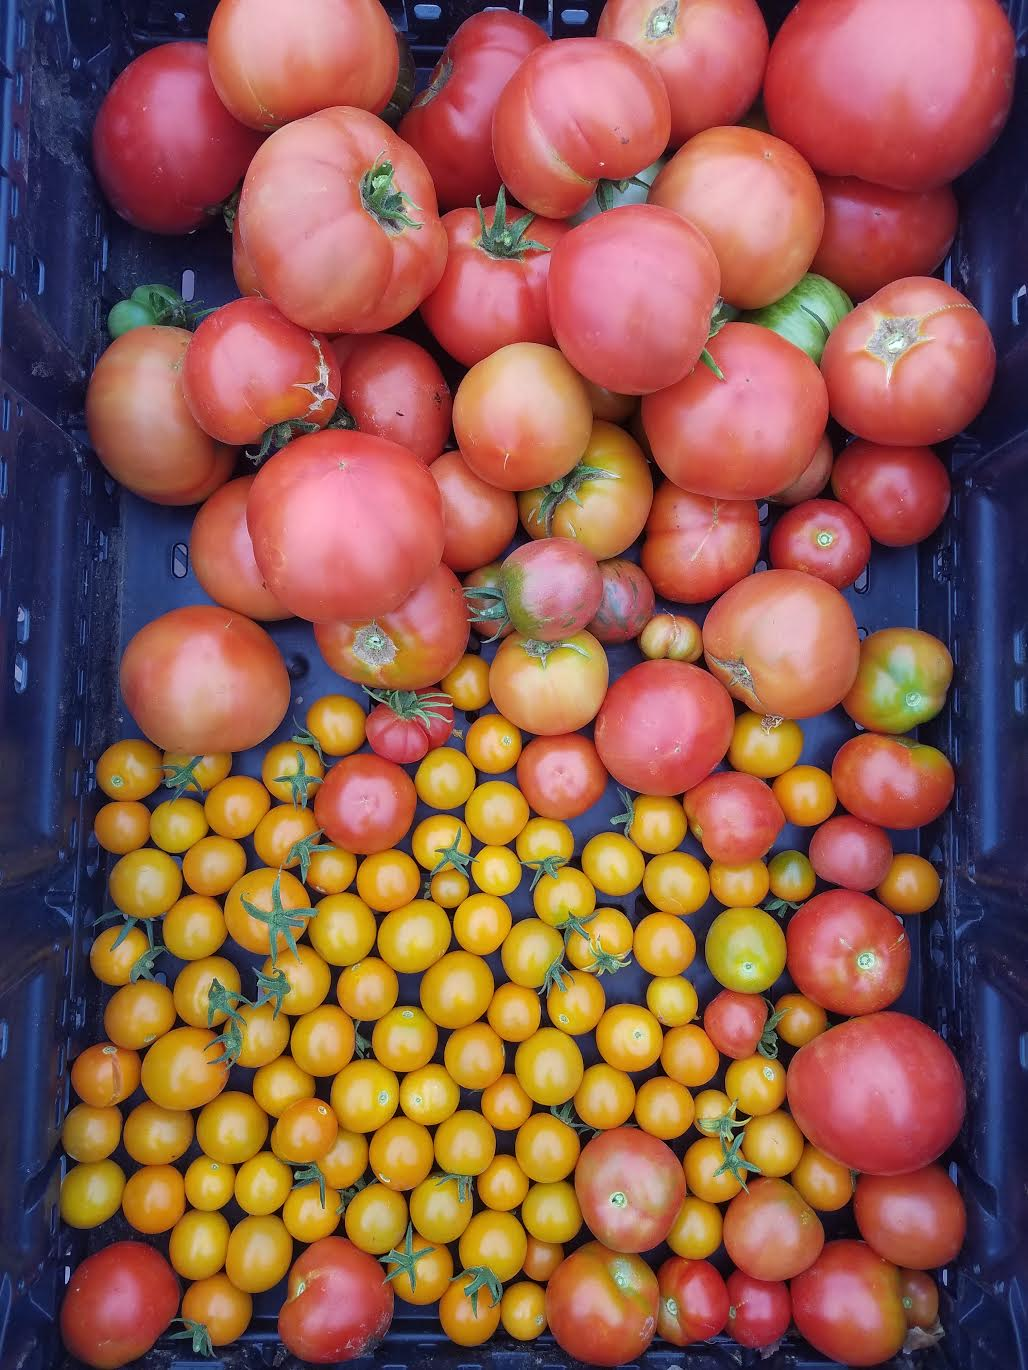 Heirloom Tomatoes - Several varieties with different sizes, shapes, colors, and flavor profiles. The sky's the limit. Raw or cooked, sauced or stewed, roasted or fried, tomatoes are infinitely versatile.